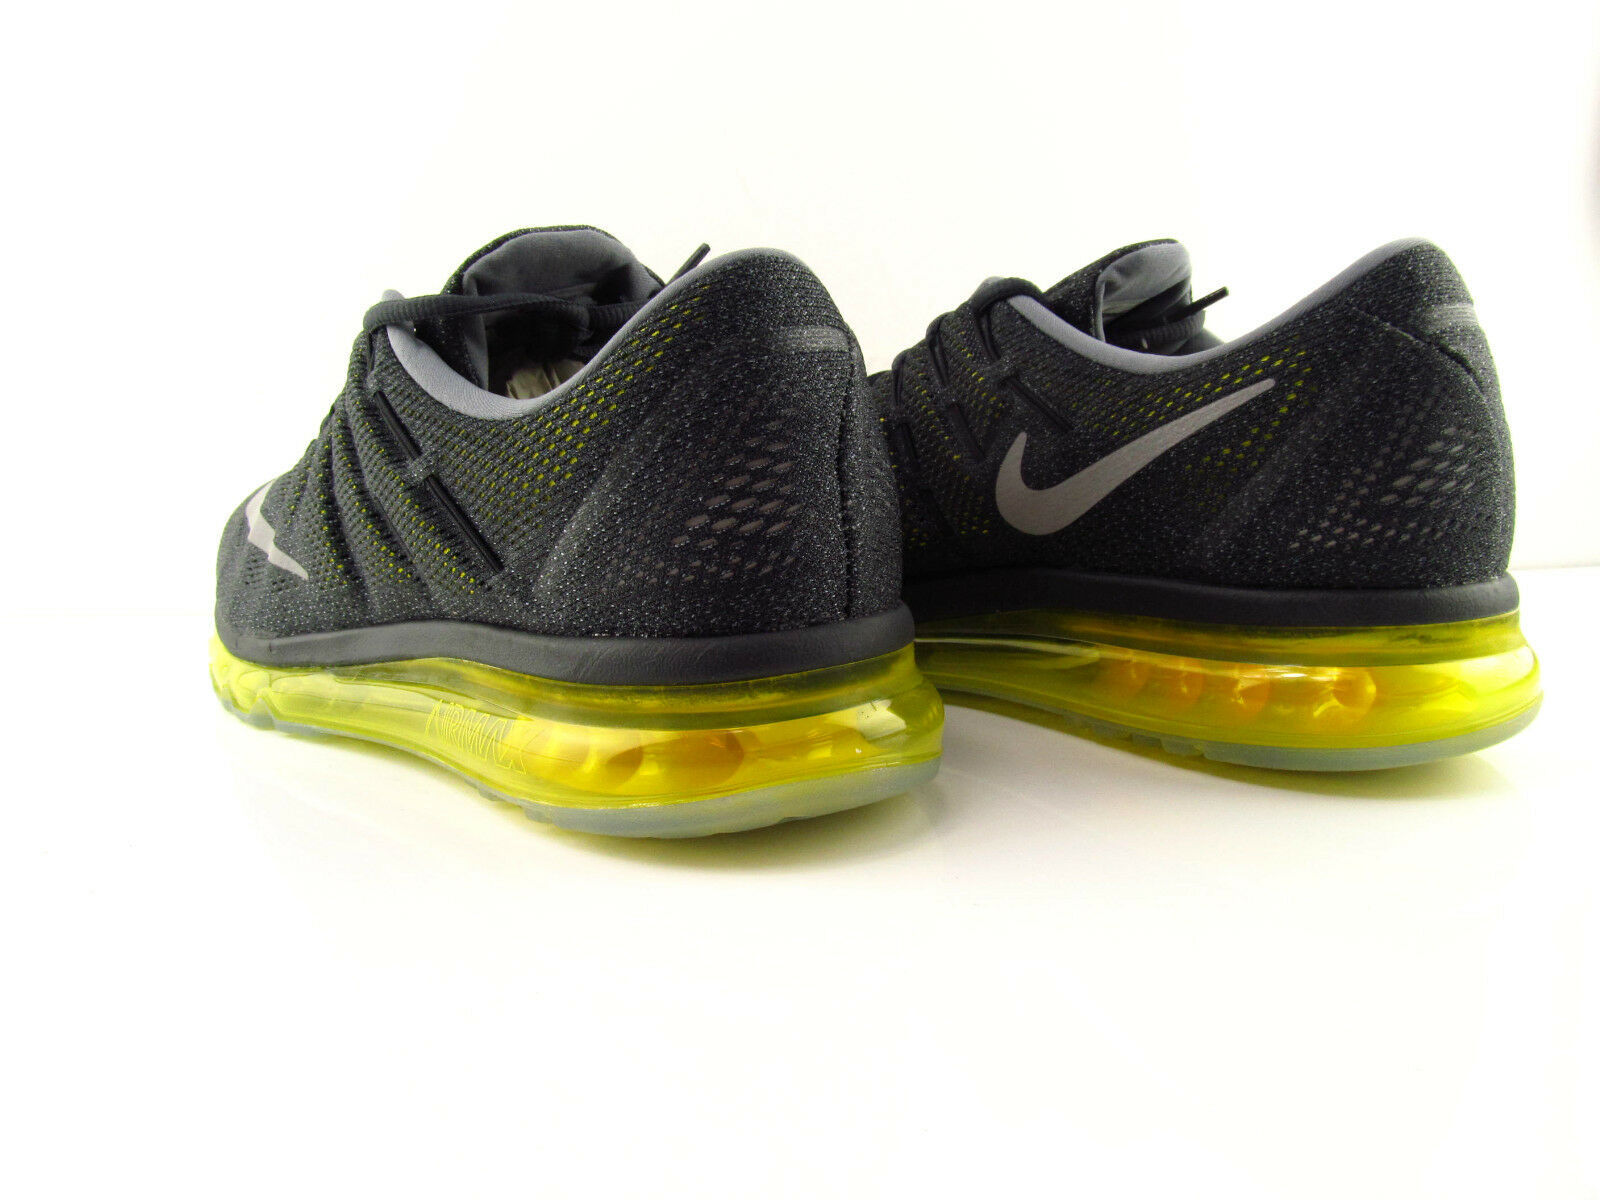 Nike Air Max 2016 Anthracite Reflect Silver Yellow Yellow Yellow Running New US_6.5 Eur 39 64a7b0